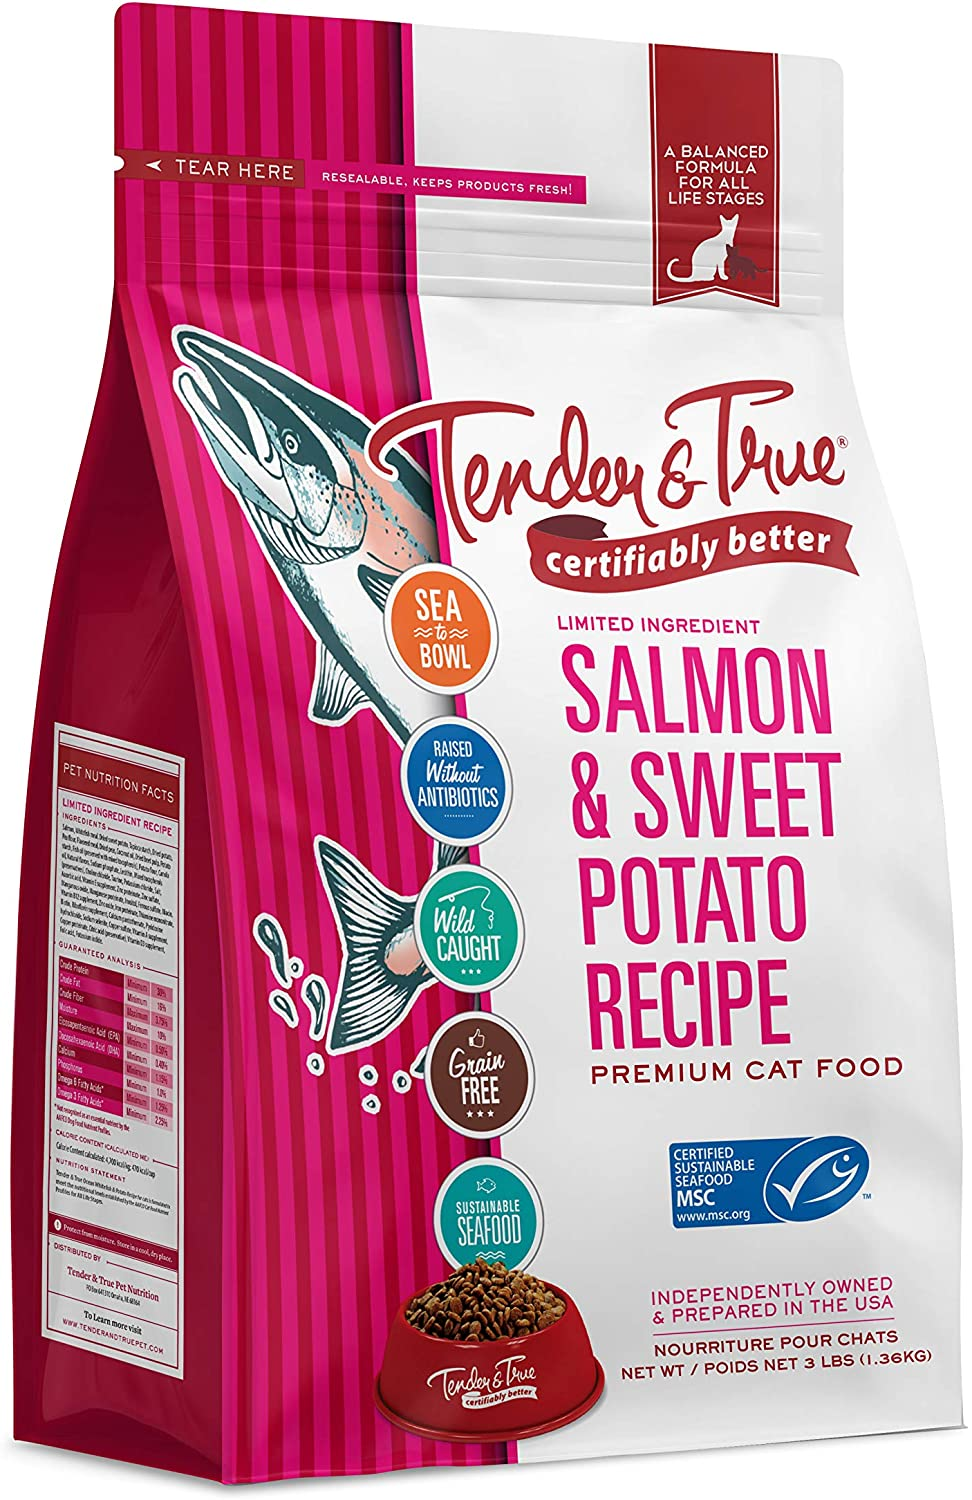 Tender & True Salmon & Sweet Potato Recipe Cat Food